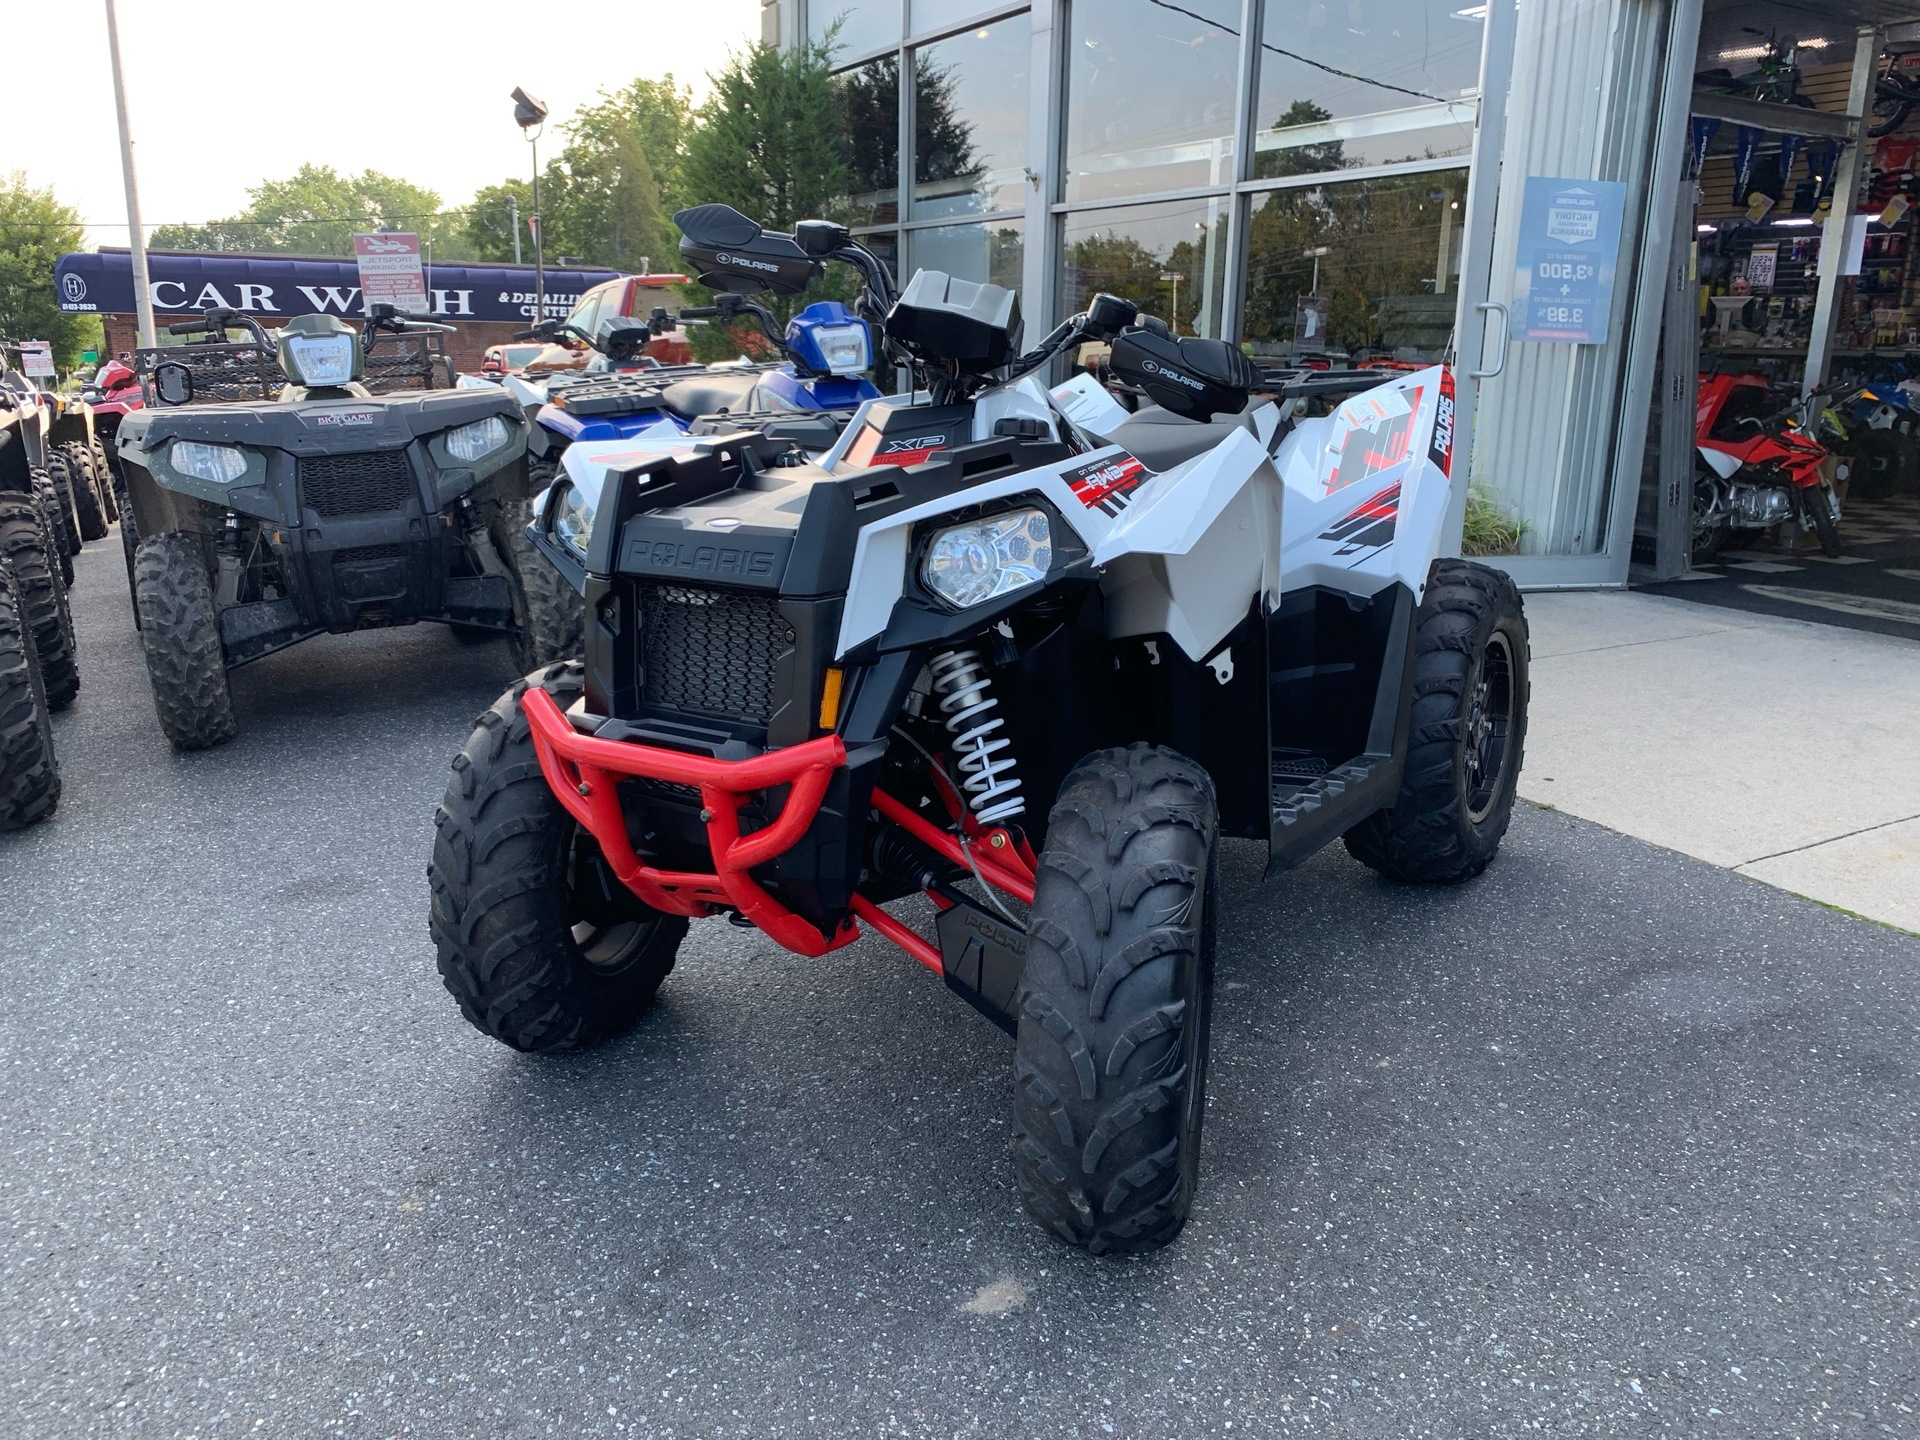 2014 Polaris Scrambler® XP 1000 EPS in Huntington Station, New York - Photo 3